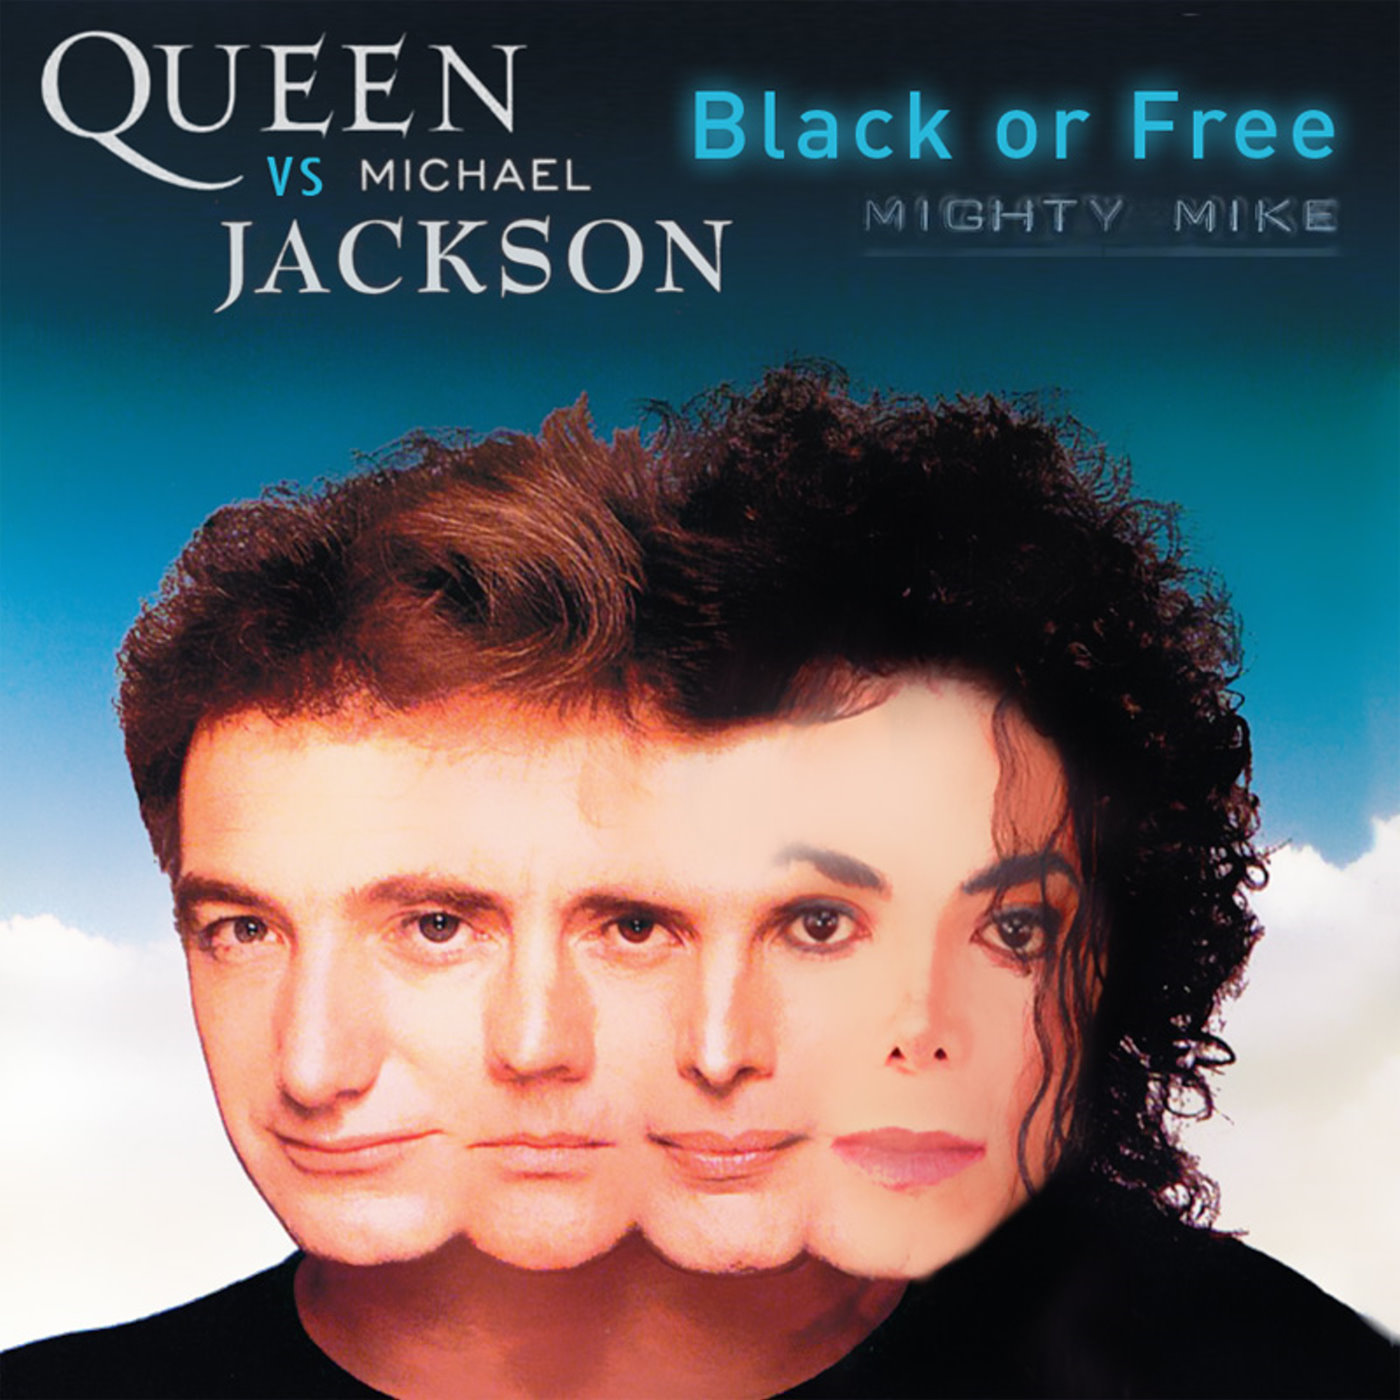 Black or free (Michael Jackson / Queen) (2009)